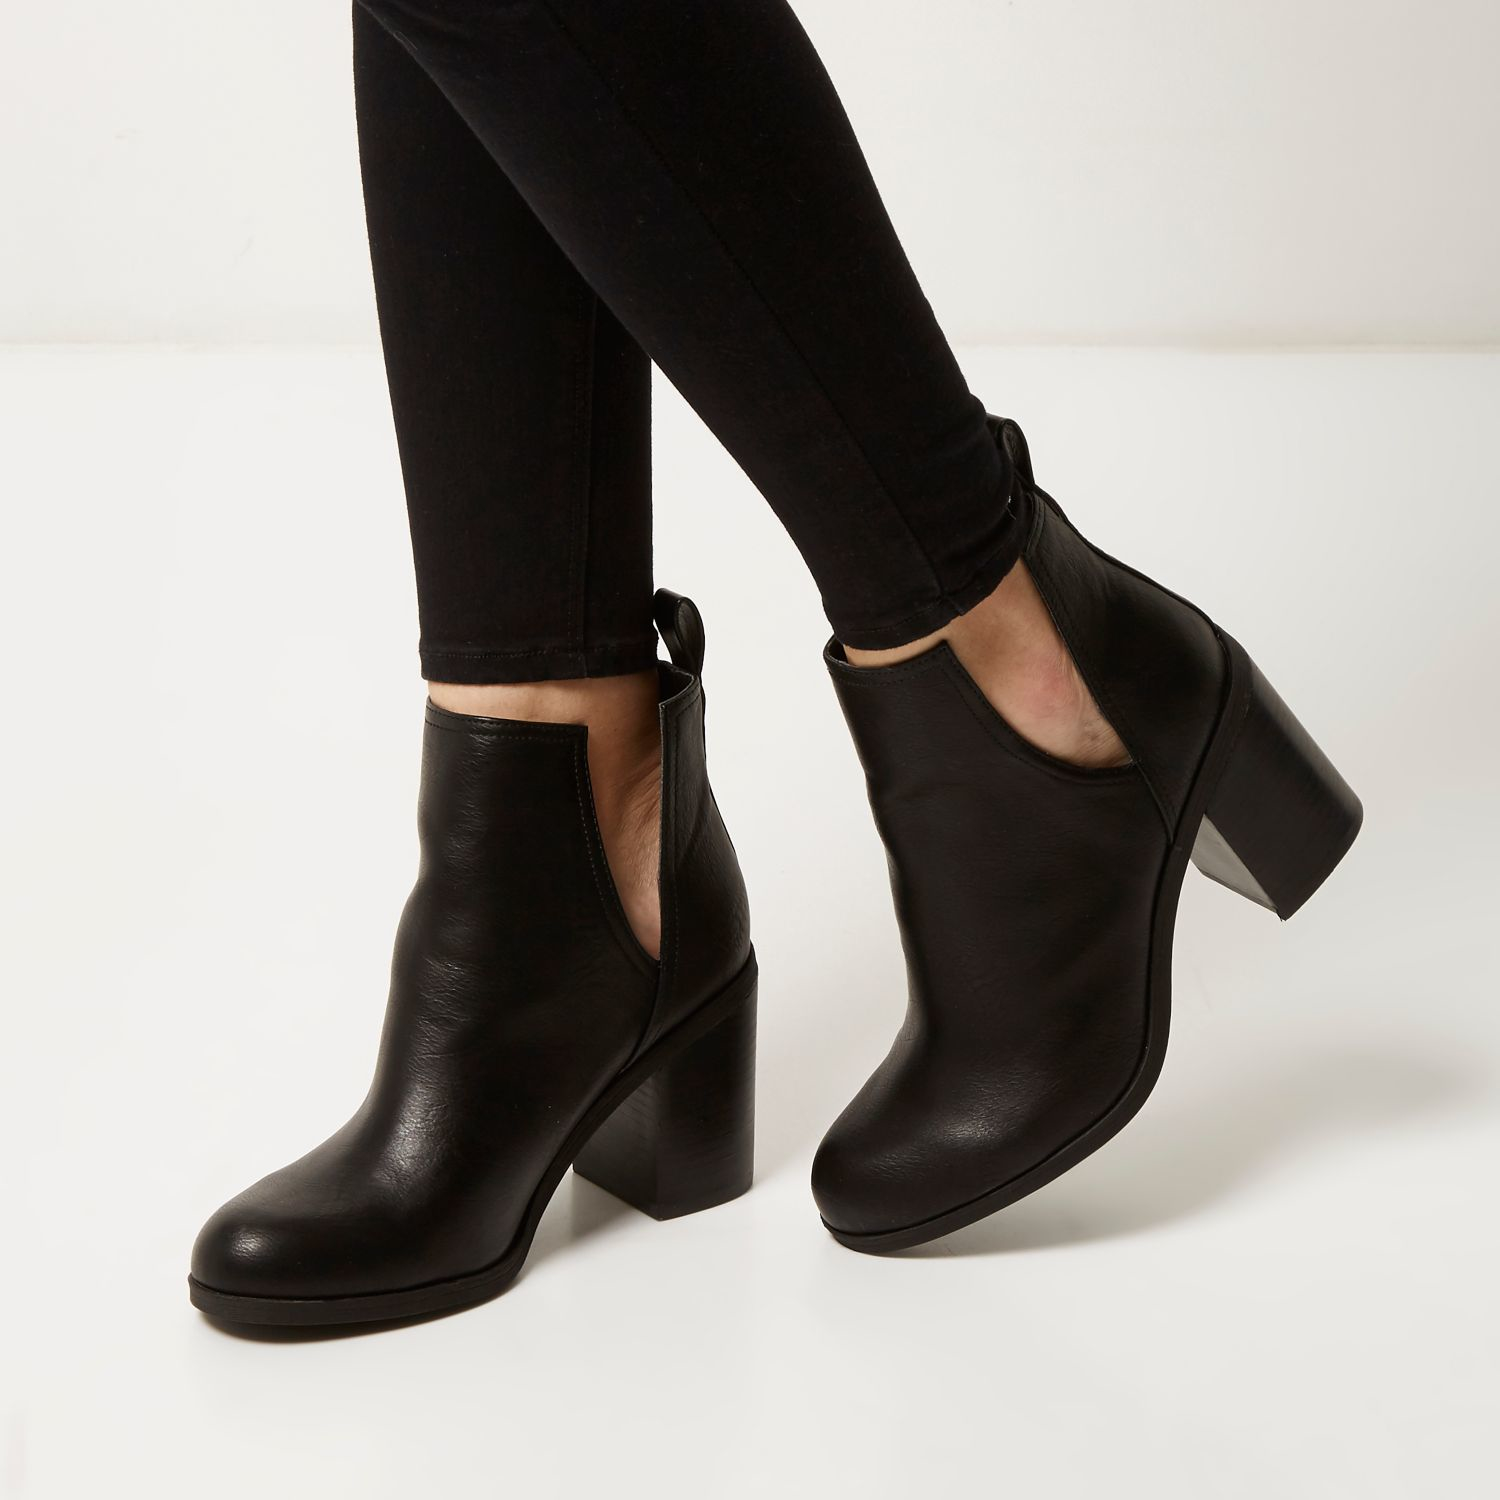 0bb28665b1d River Island Black Cut-out Side Heeled Ankle Boots - Lyst